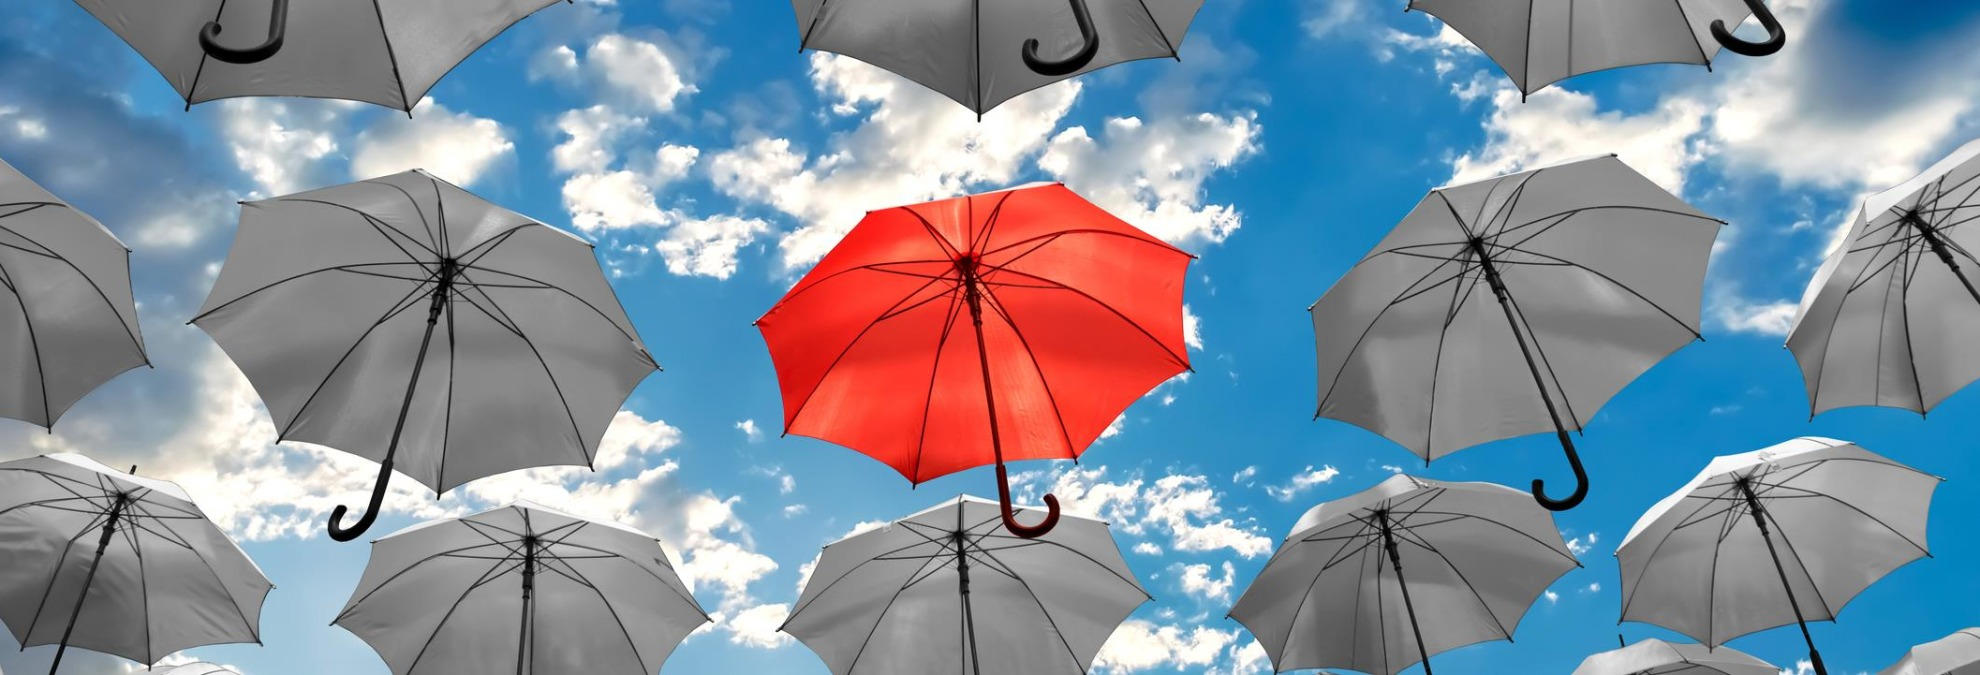 One red umbrella surrounded by white umbrellas floating in the sky